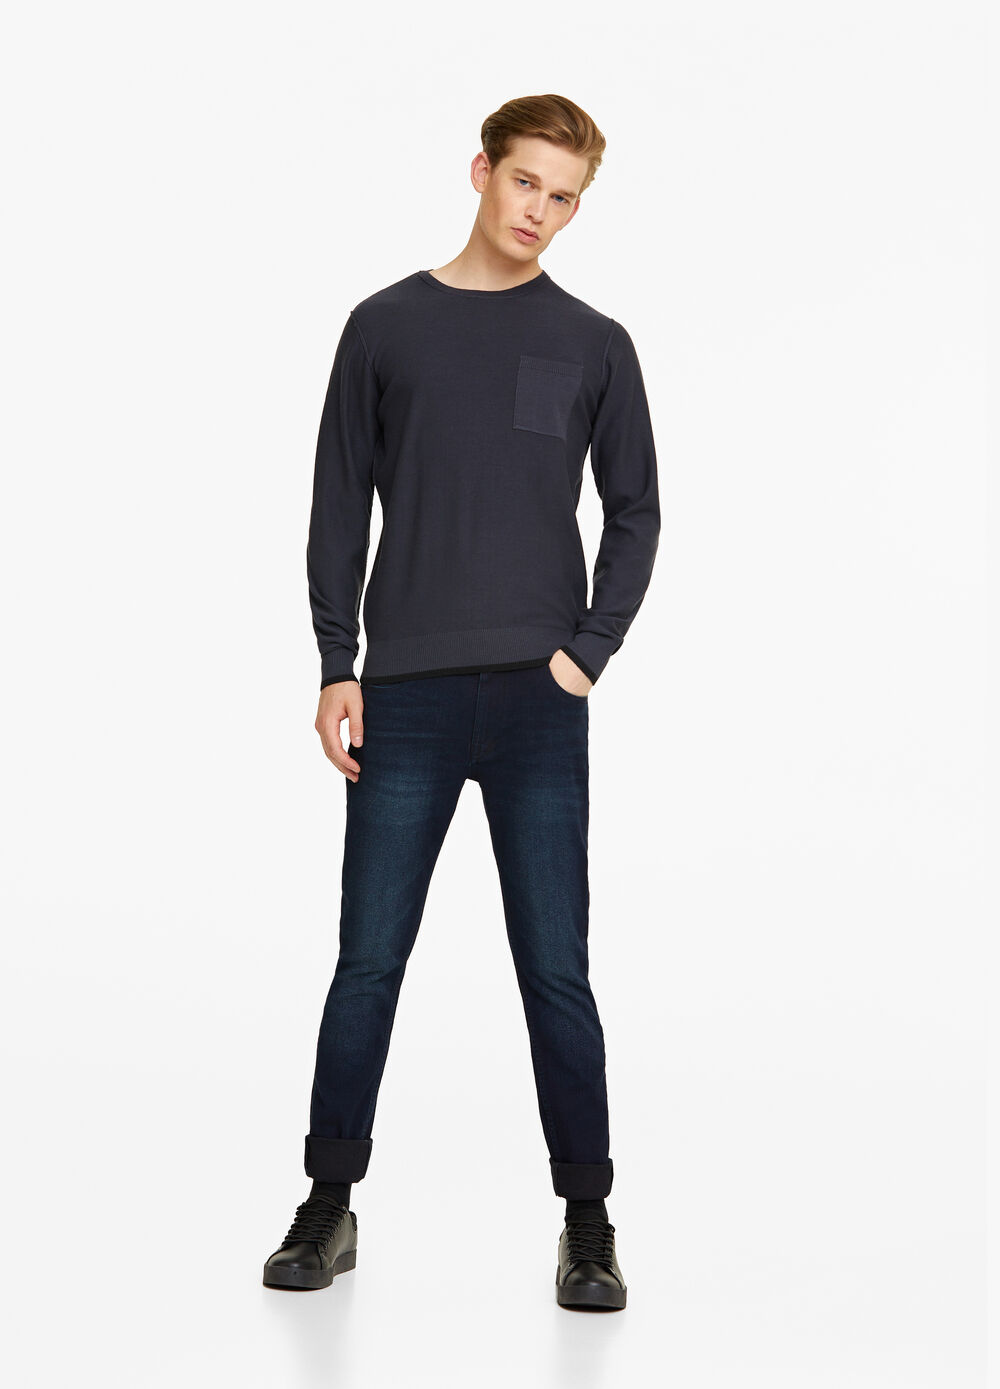 Cotton blend pullover with pocket